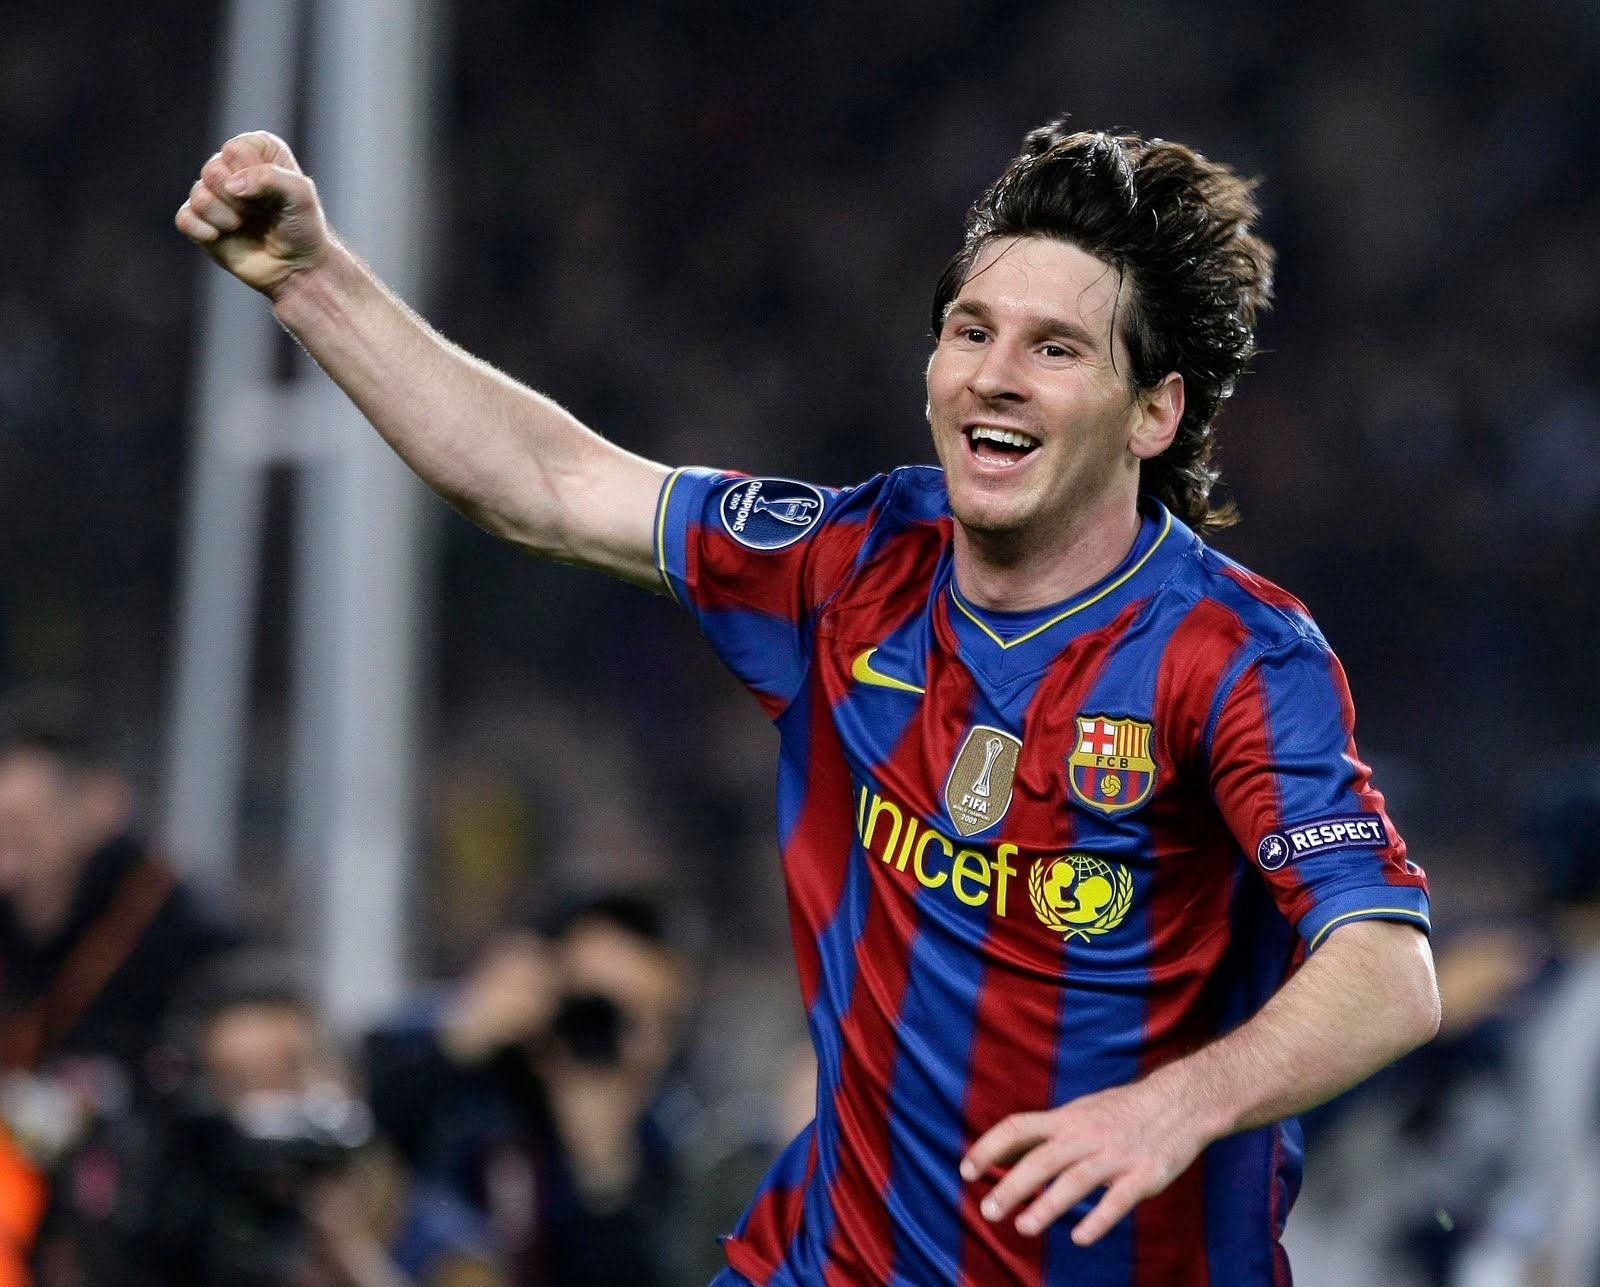 Players Lionel Messi Wallpapers HD   Messi Latest Wallpapers 2012 1600x1287